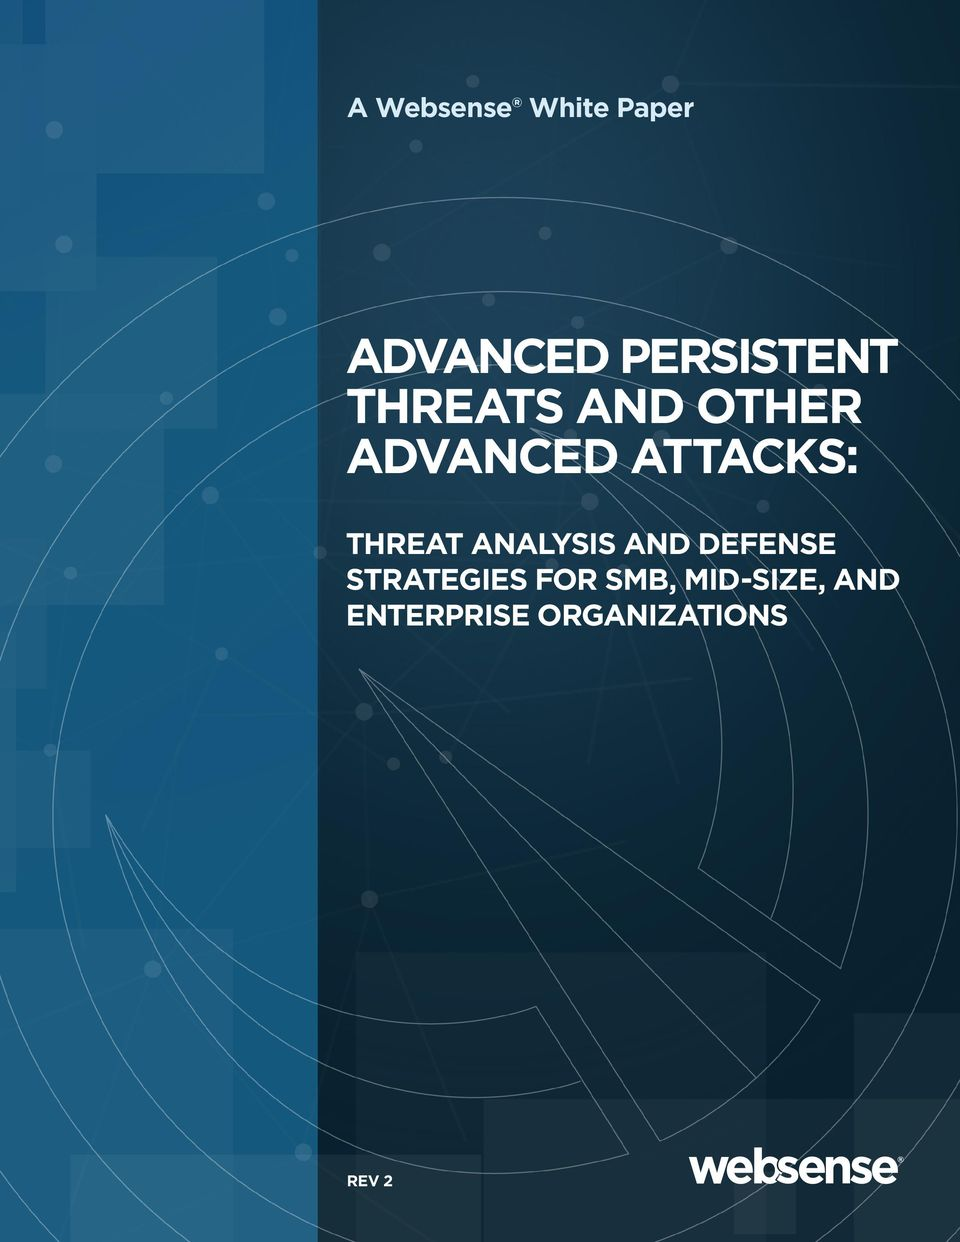 ANALYSIS AND DEFENSE STRATEGIES FOR SMB,